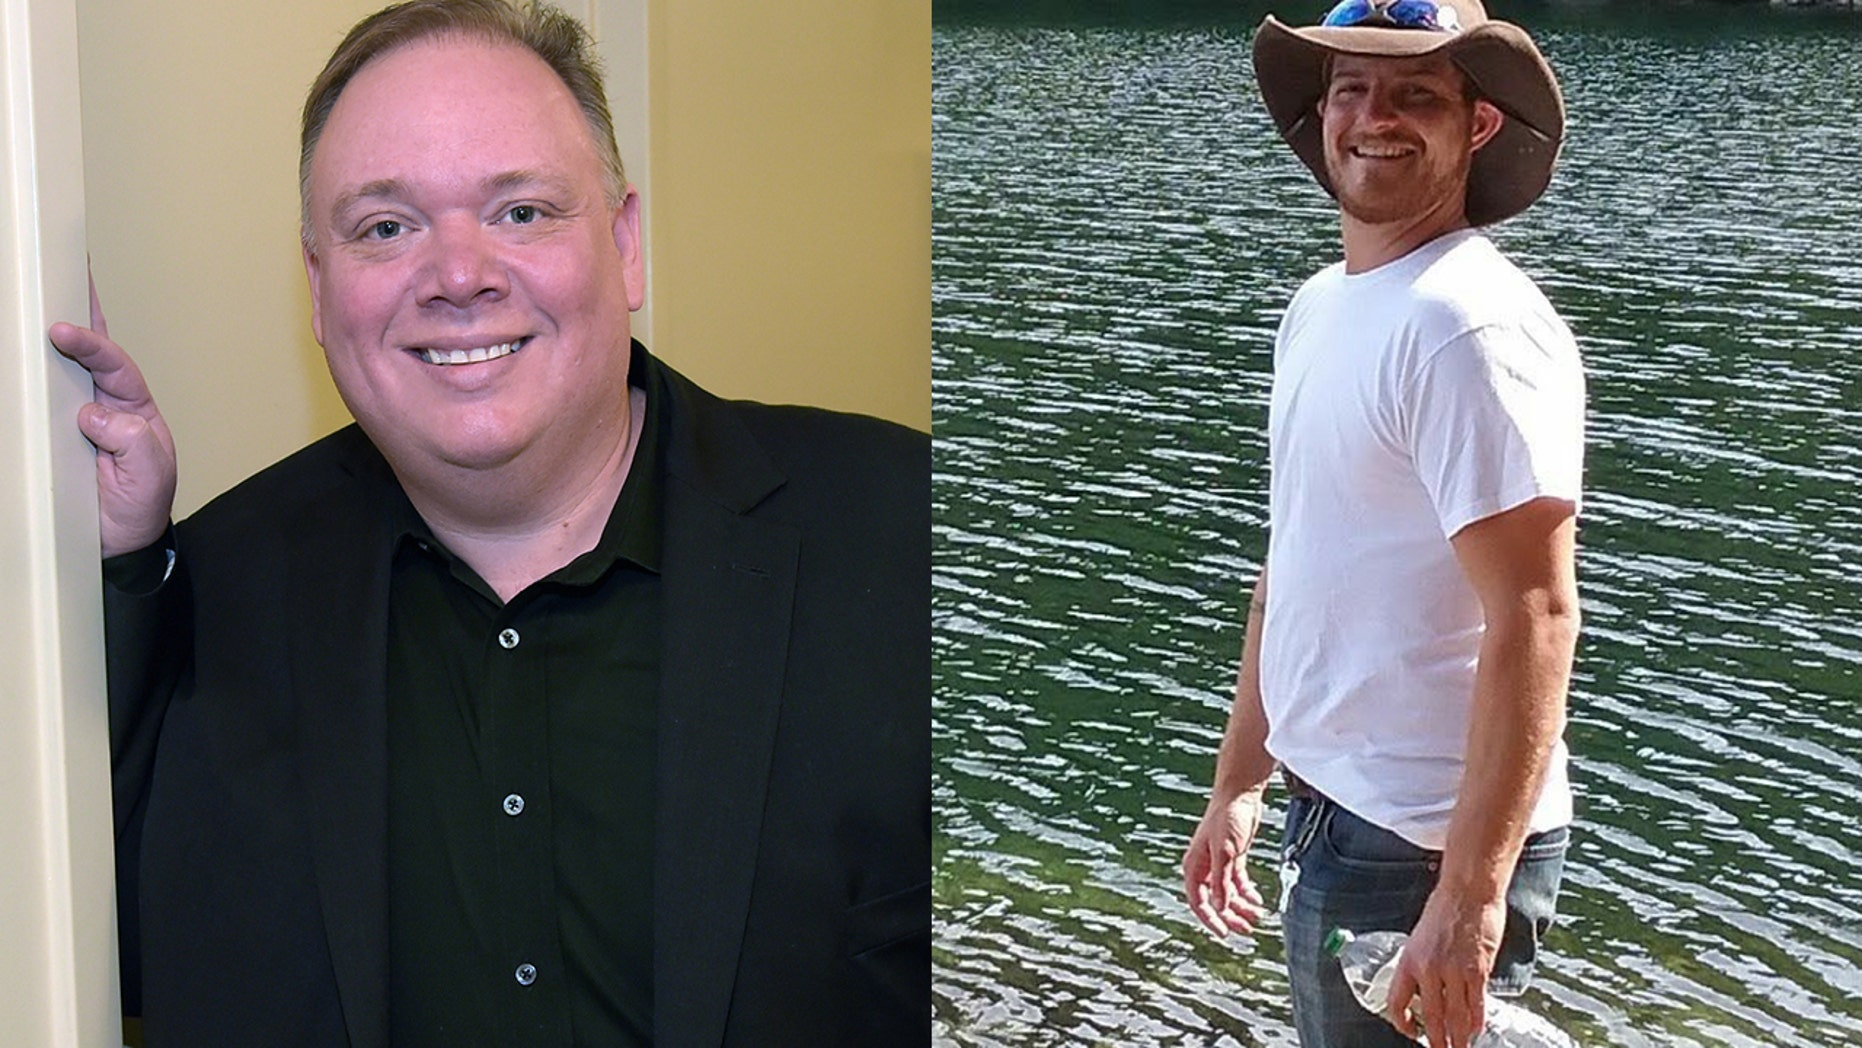 Disgraced Nashville publicist Kirt Webster (l) has been accused by former intern Cody Andersen (r) of propositioning him for sex.